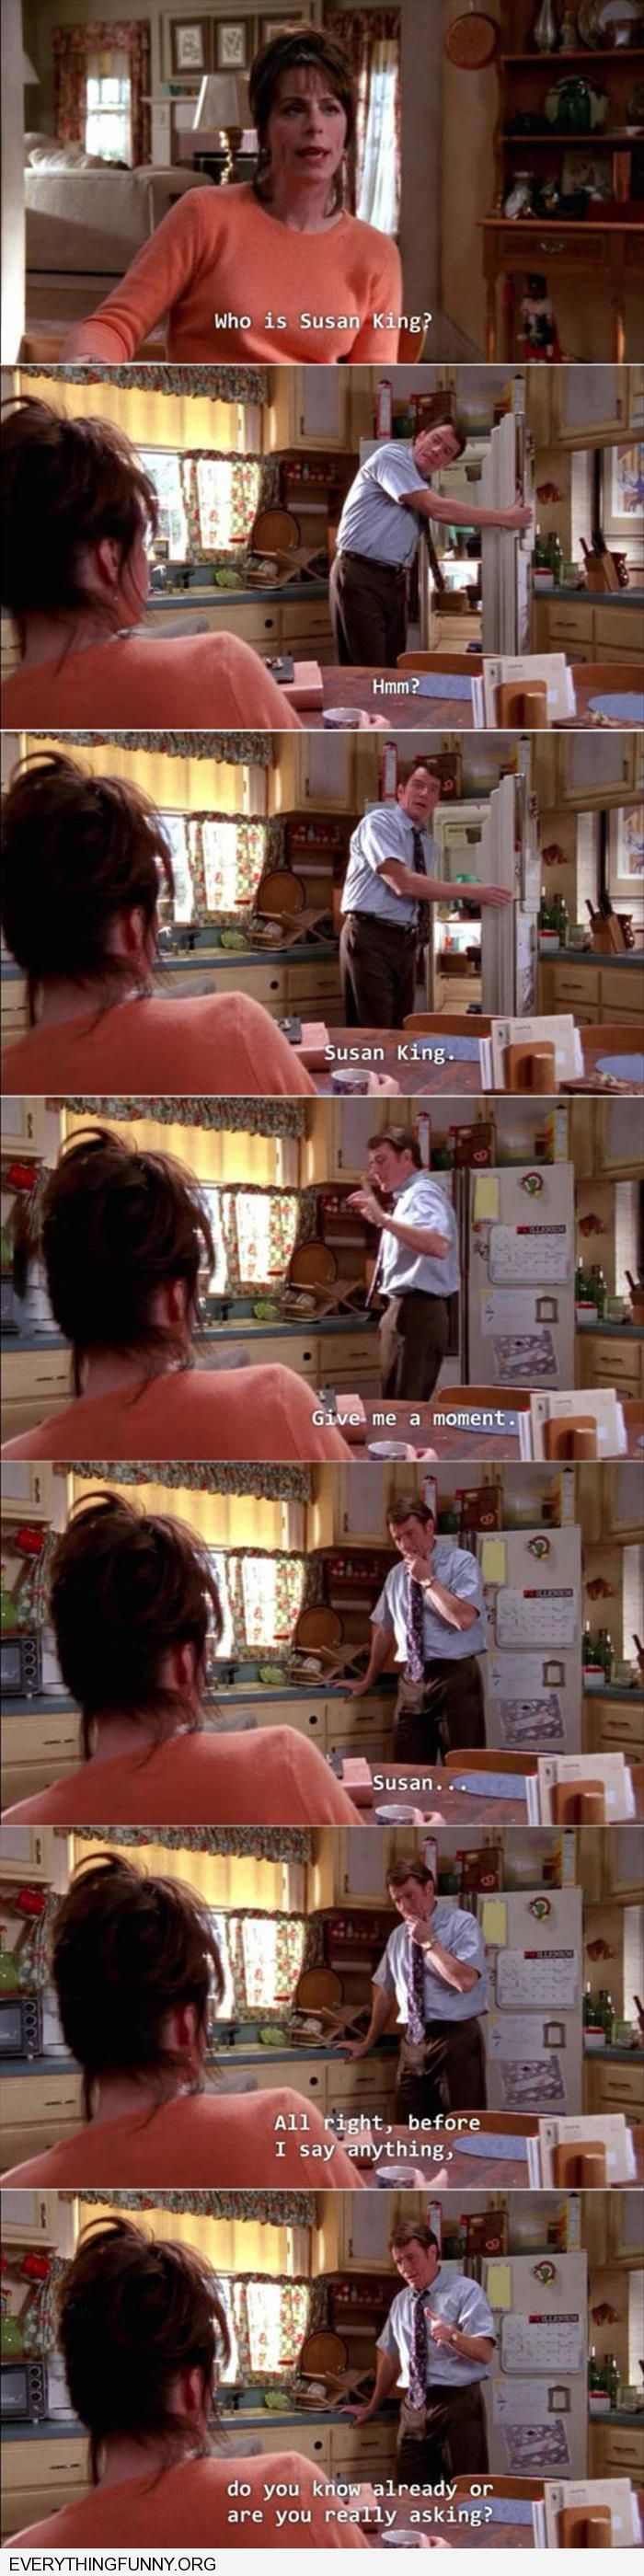 funny malcolm in the middle screen grab are you asking because you already know the answer